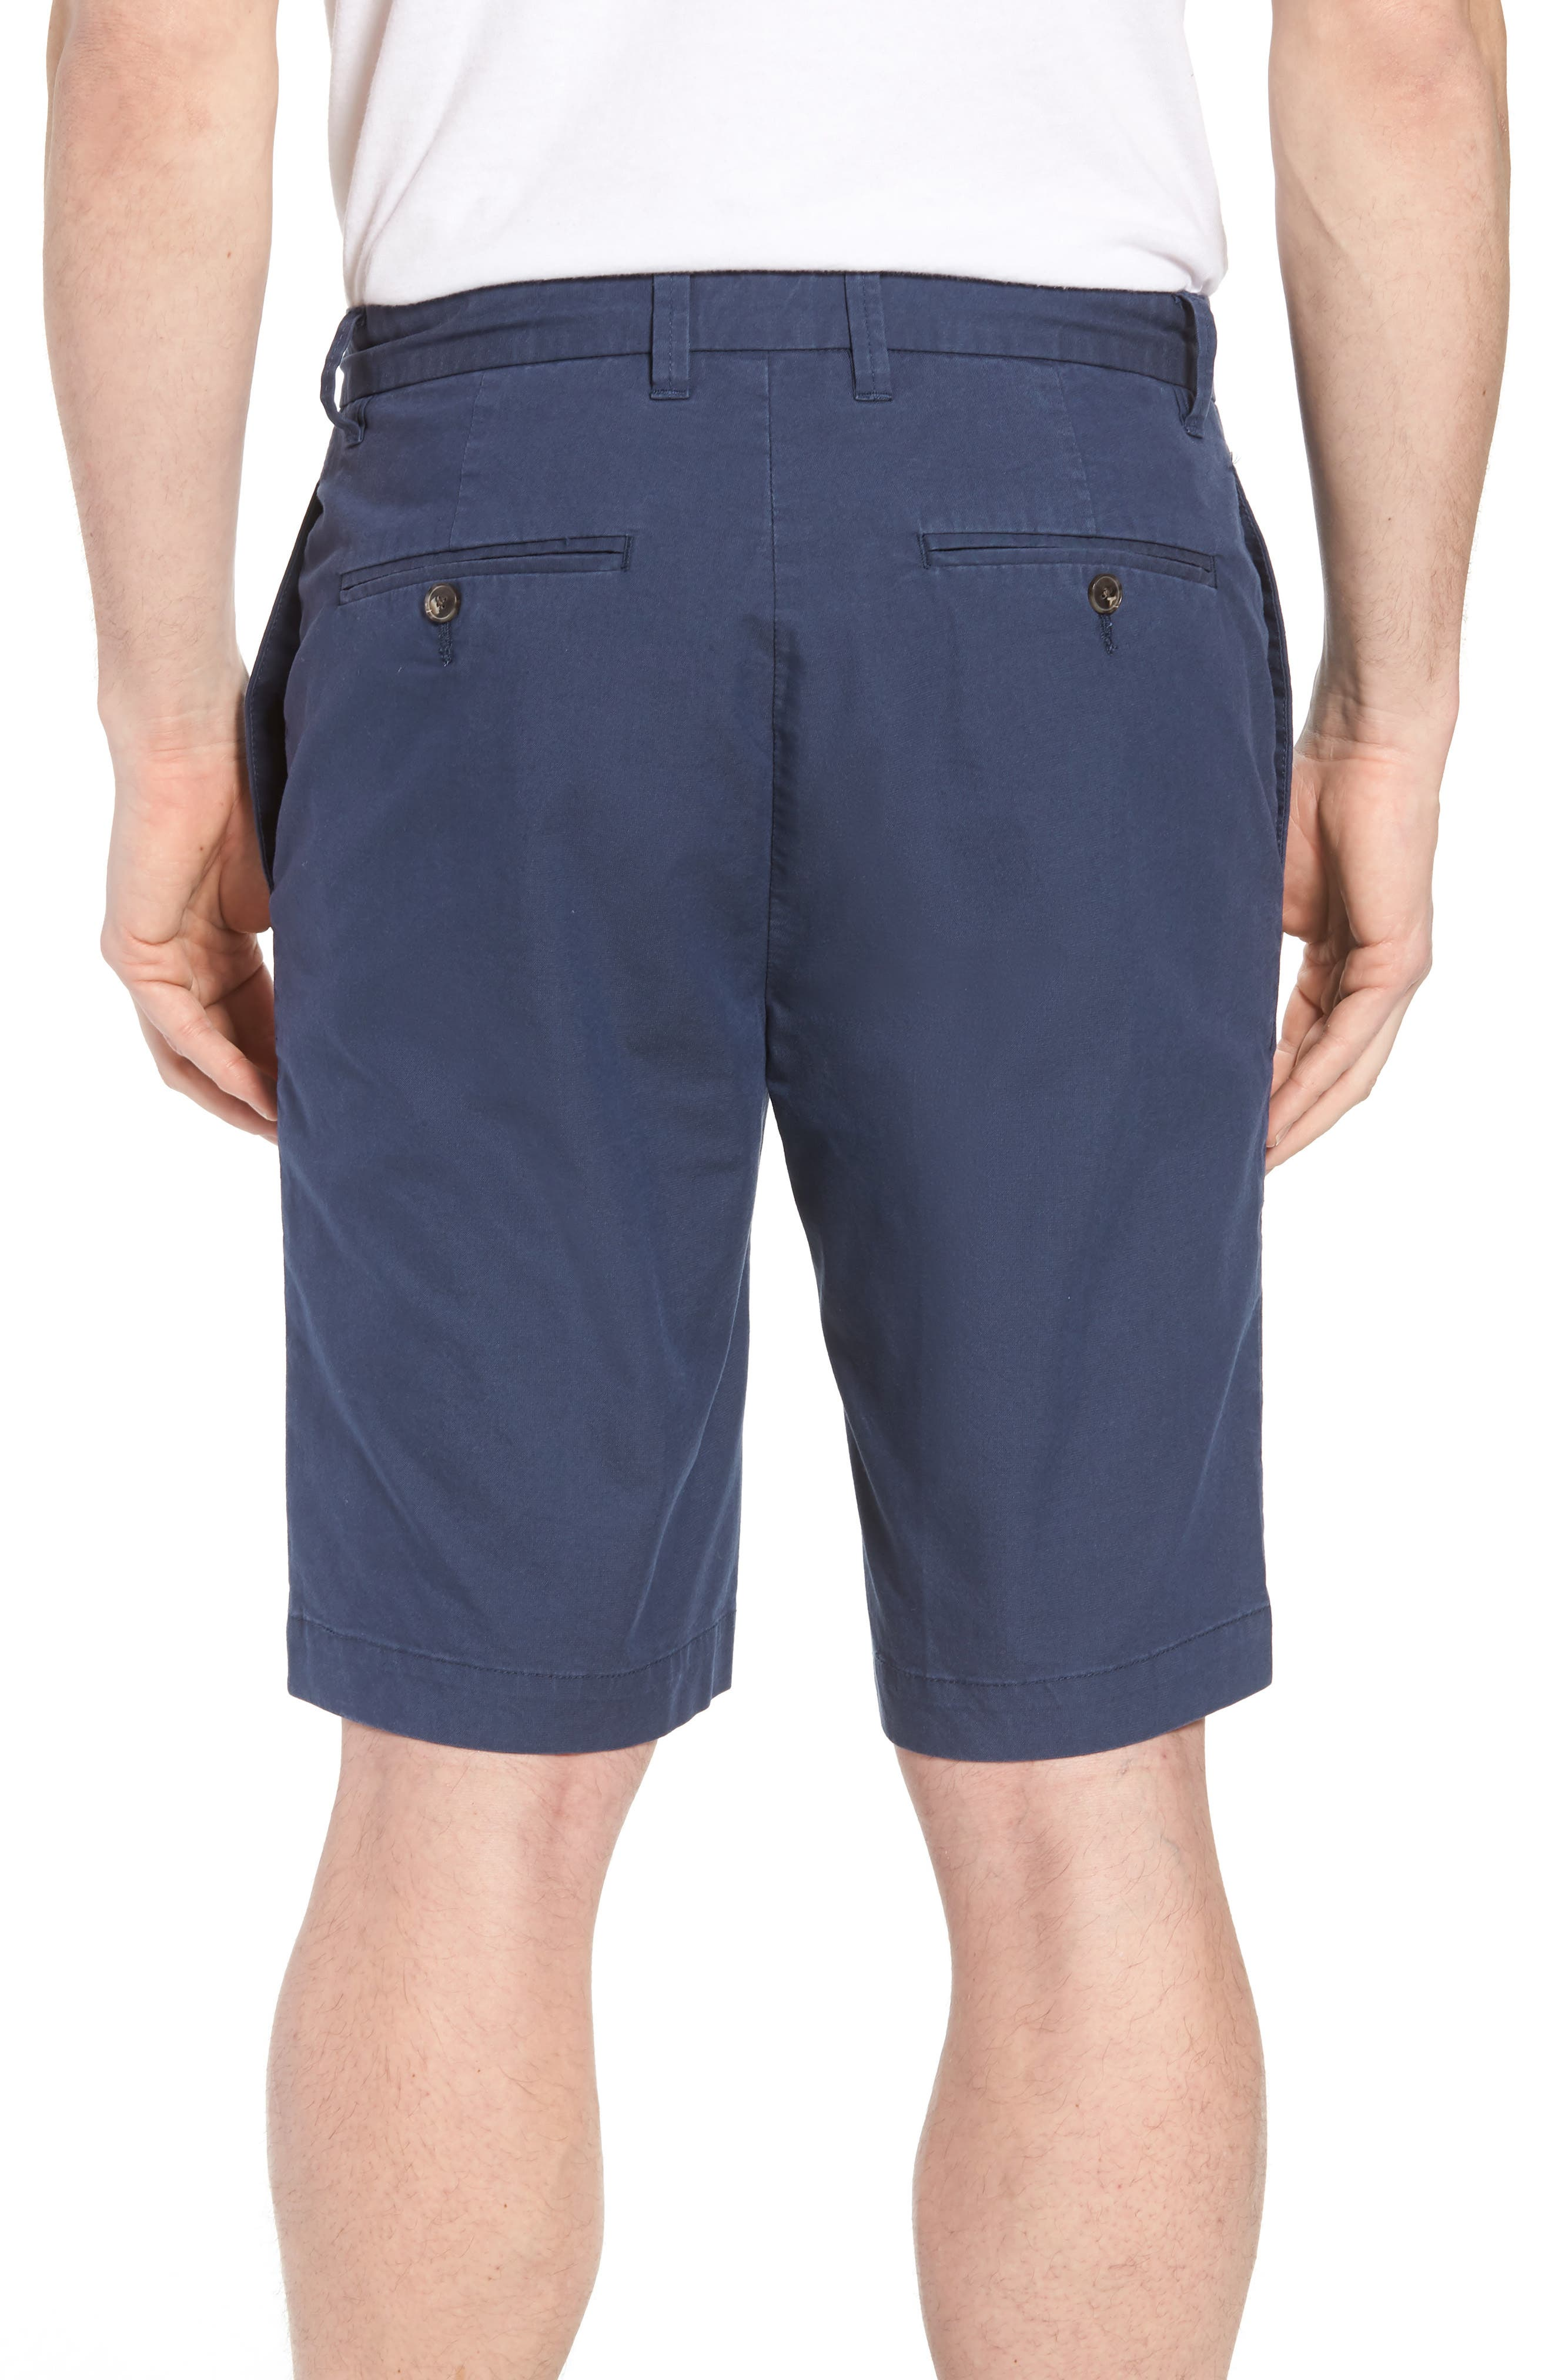 Broadway Regular Fit Chino Shorts,                             Alternate thumbnail 2, color,                             413